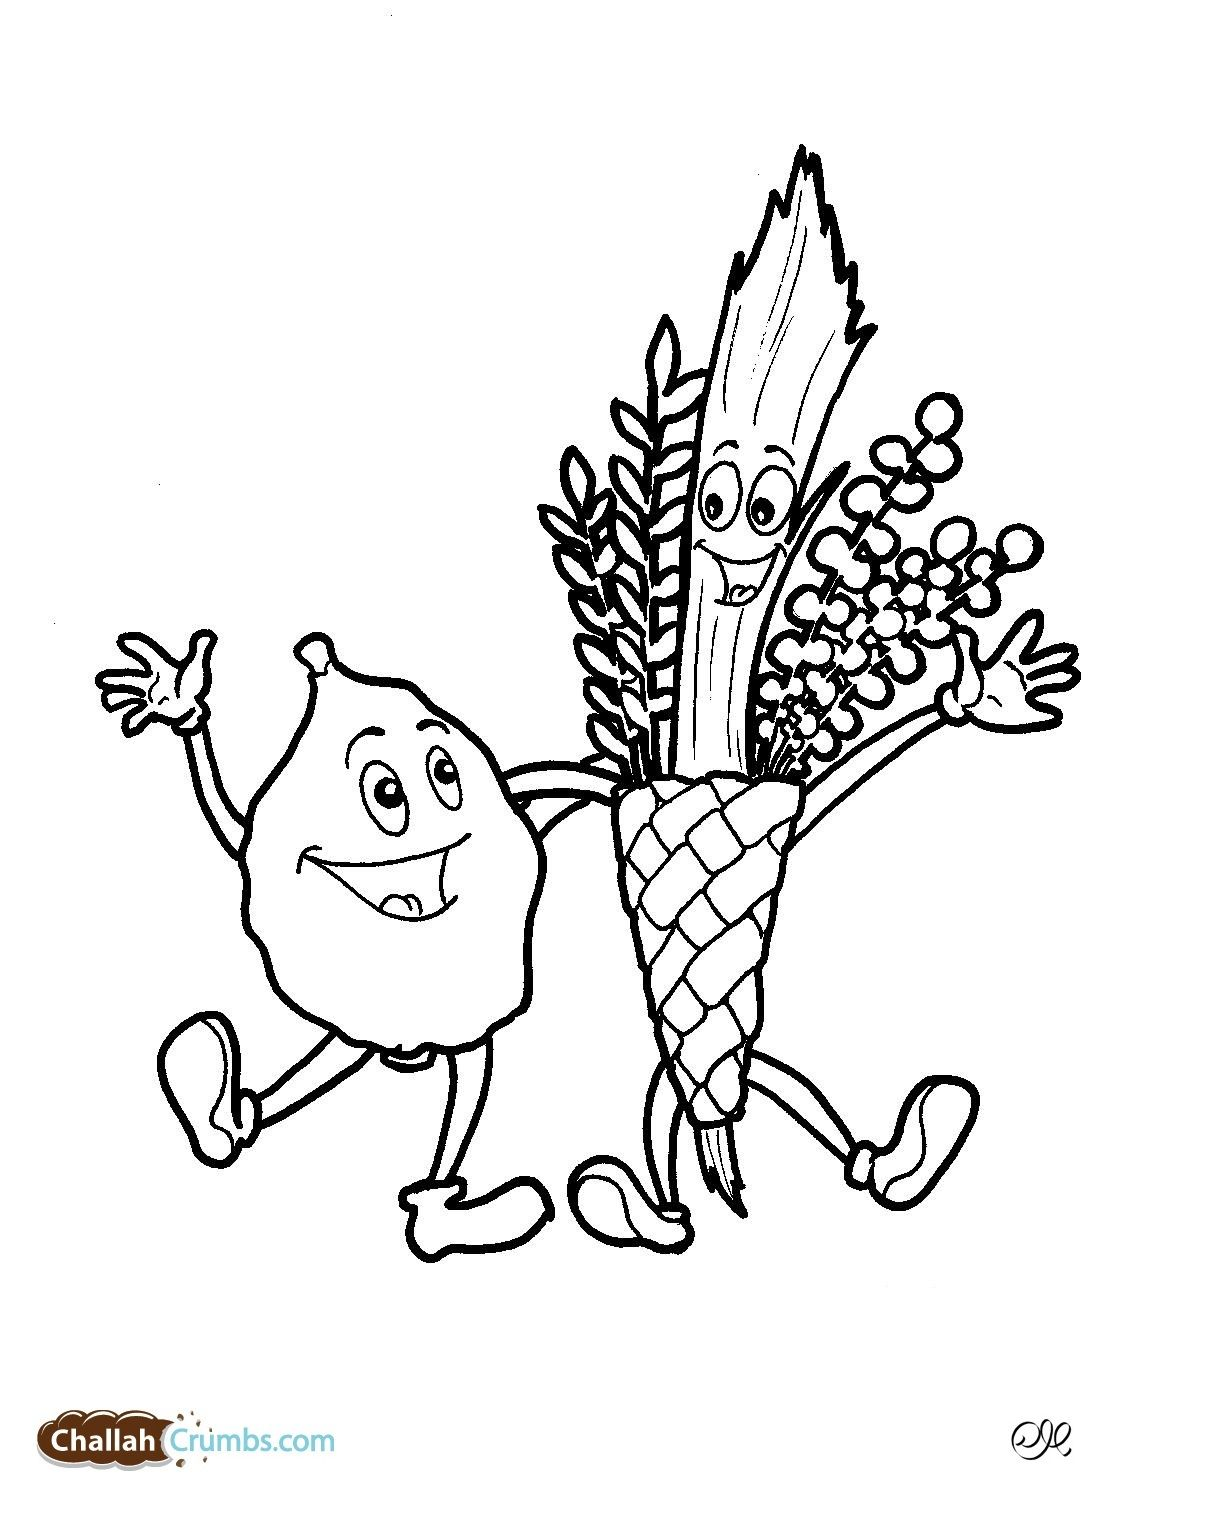 lulav and etrog picture sukkot lulav and etrog coloring pages surfnetkids picture lulav and etrog